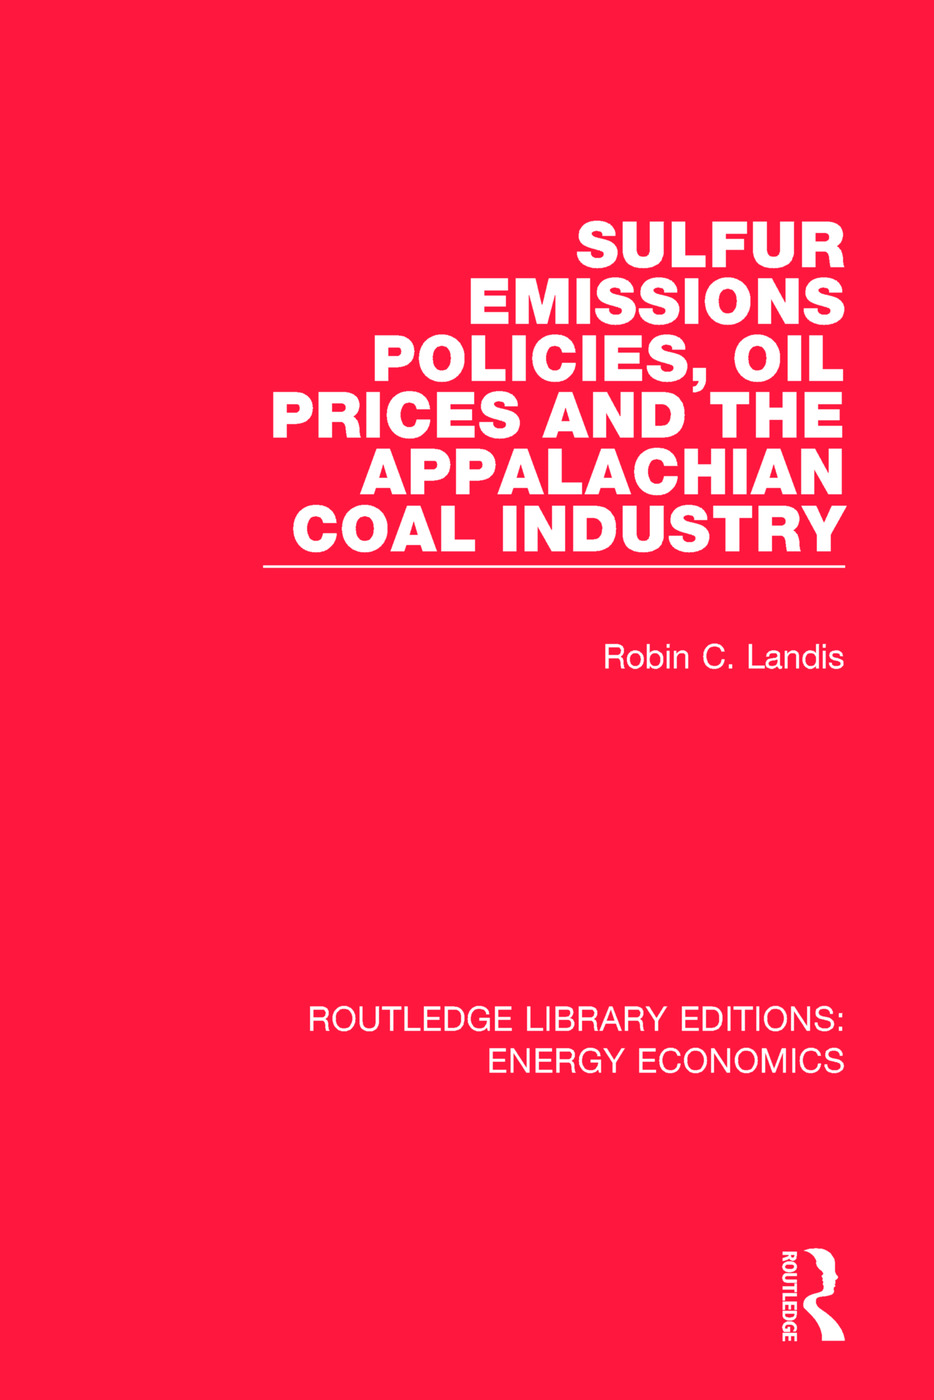 Sulfur Emissions Policies, Oil Prices and the Appalachian Coal Industry: 1st Edition (Paperback) book cover